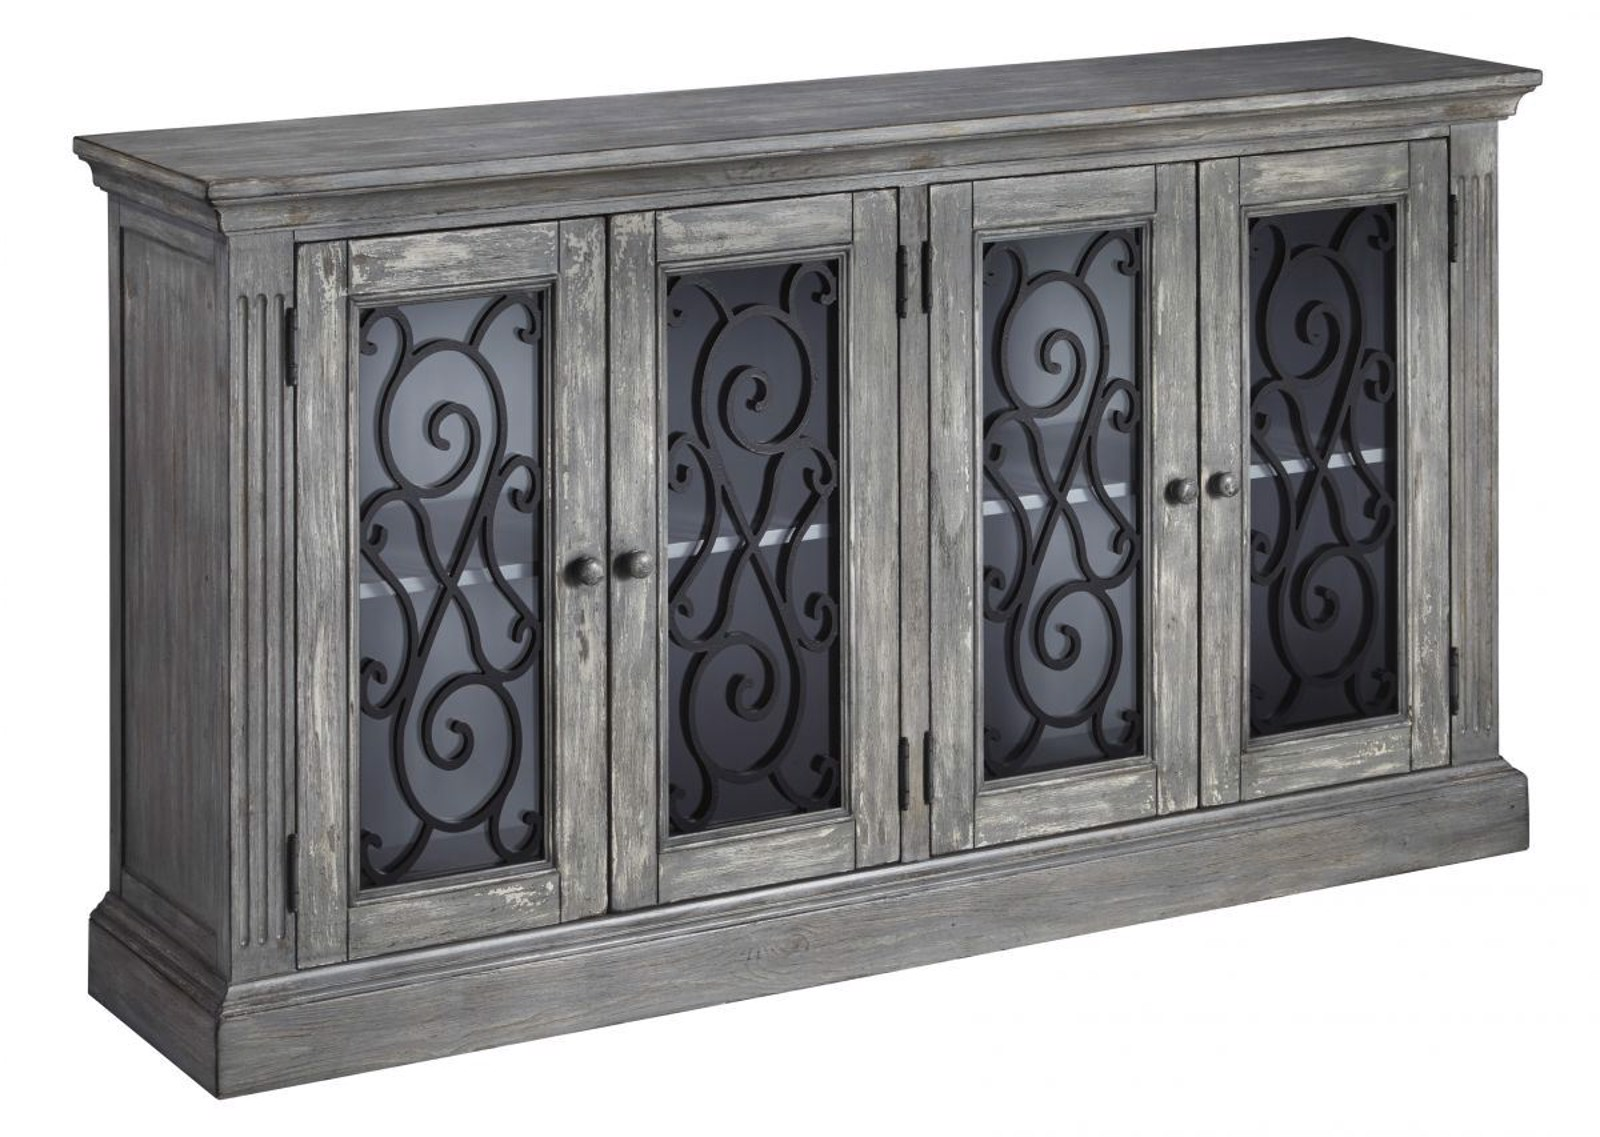 bayside one black white mirror windham gold cabinet door cabinets antique chests small accent gamino wood metal rustic mirimyn whitewashed hazelton and target glass table full